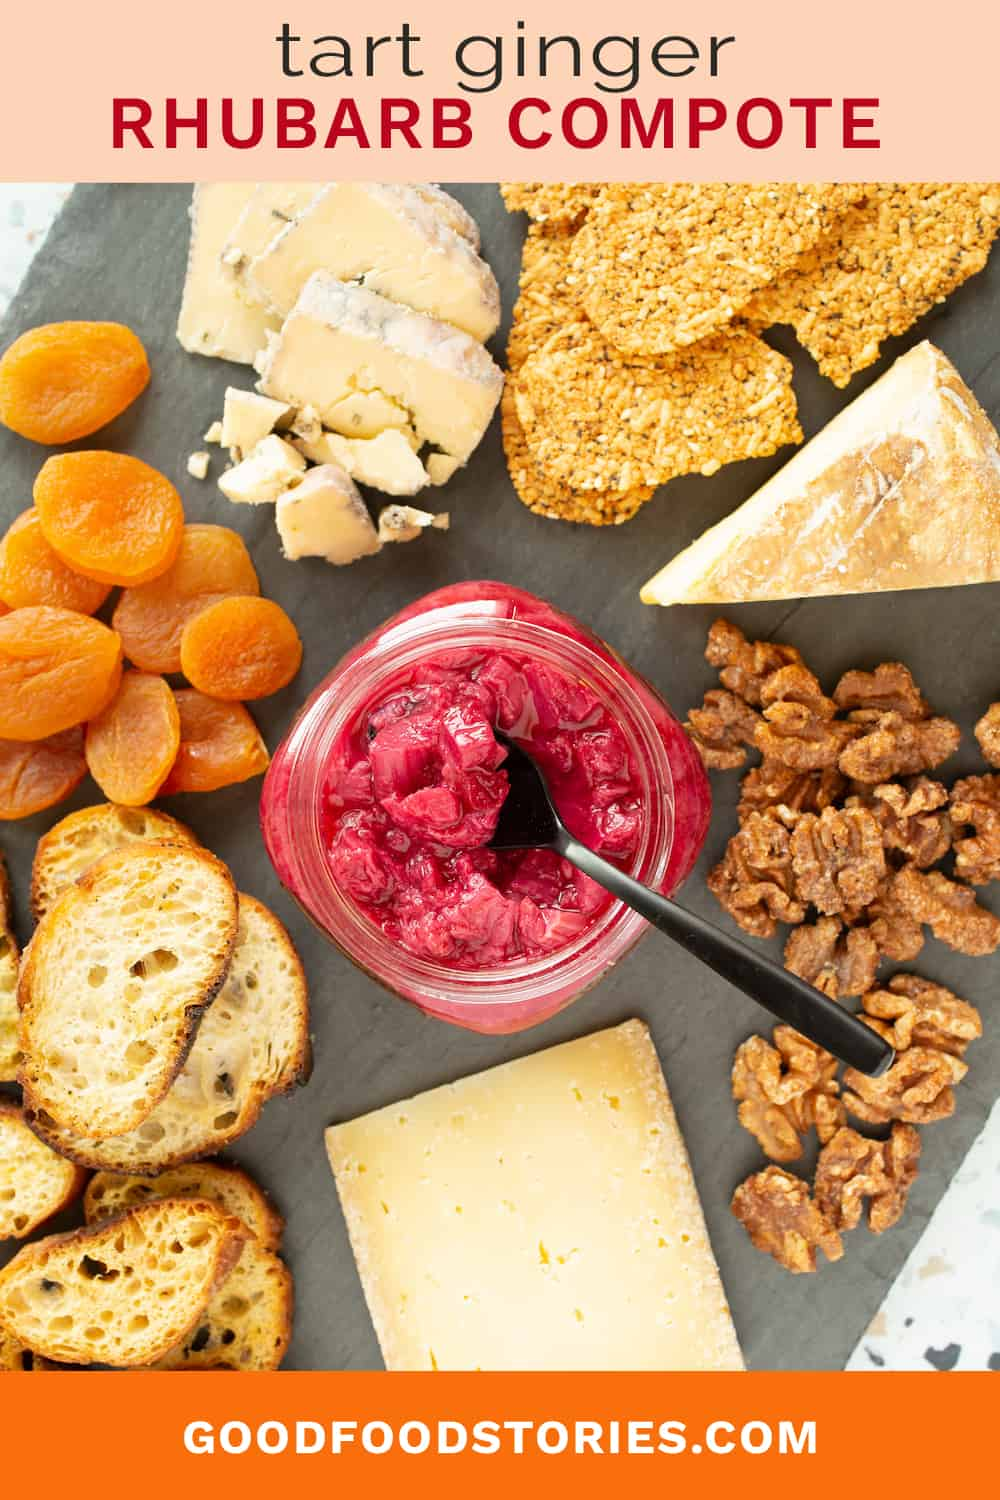 rhubarb compote with cheese board